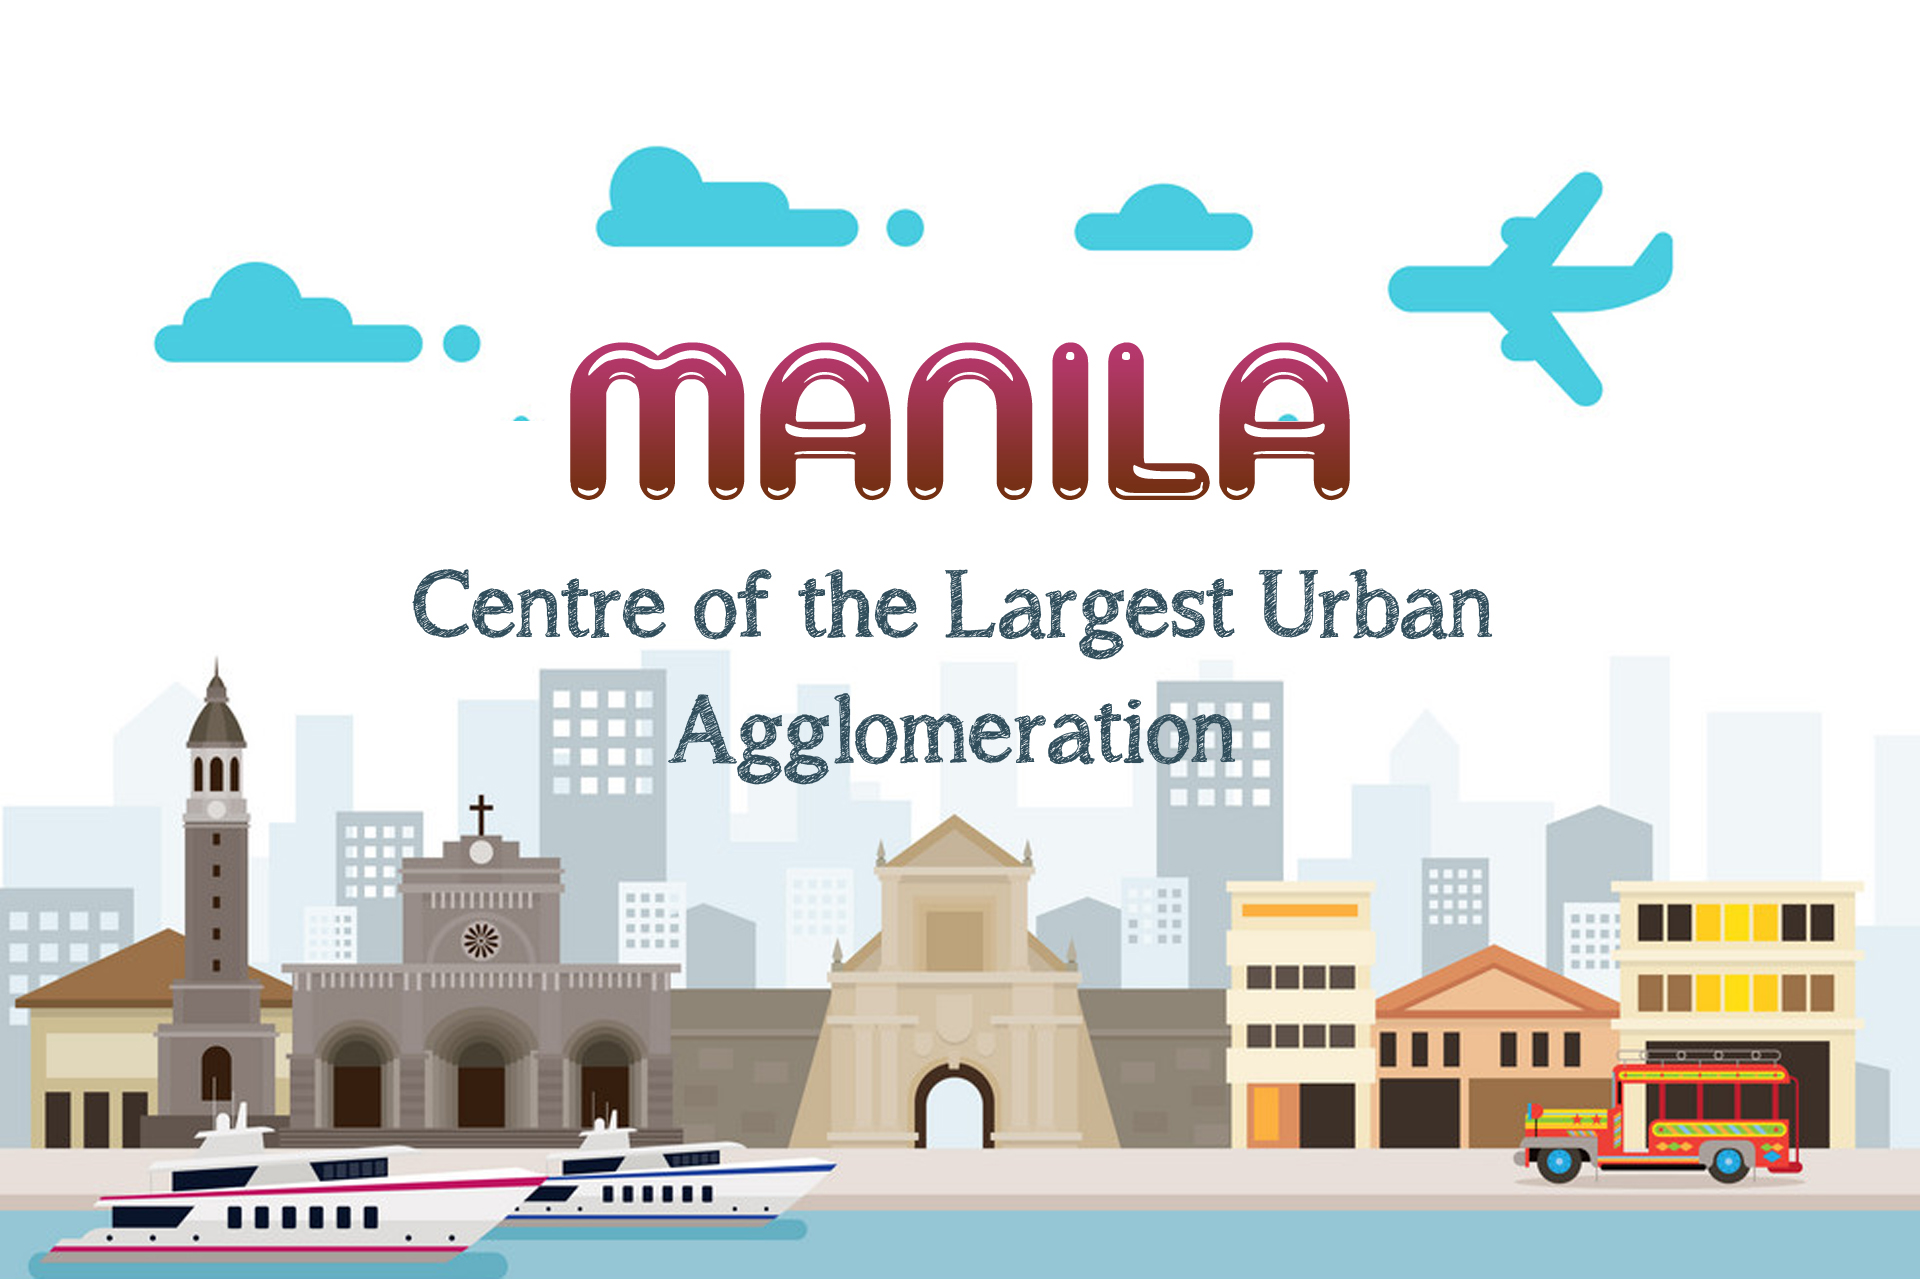 Manila – The Centre of the Largest Urban  Agglomeration